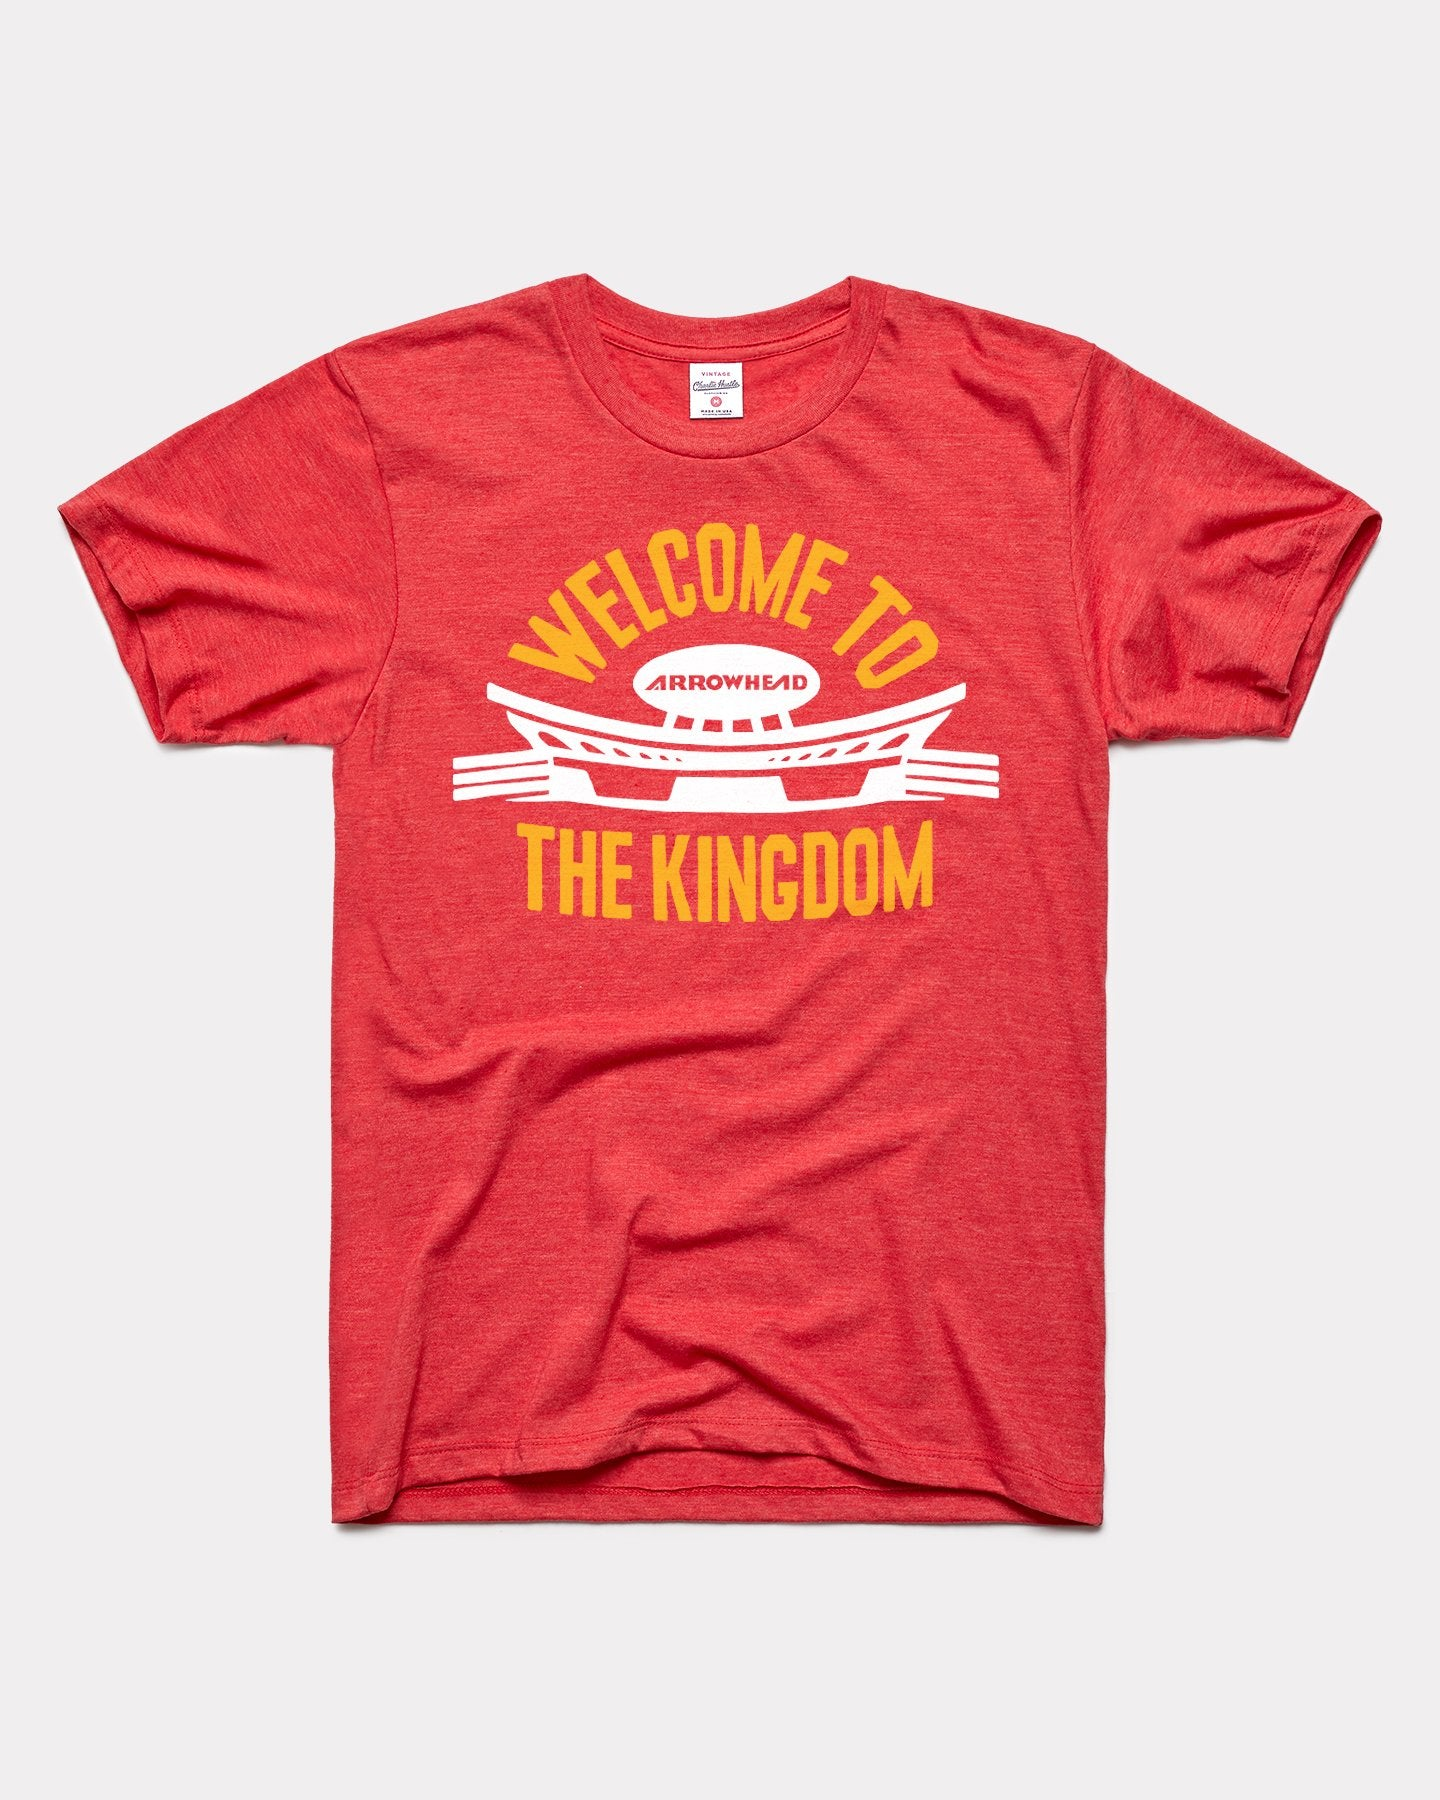 Red Arrowhead Welcome to the Kingdom Vintage T-Shirt